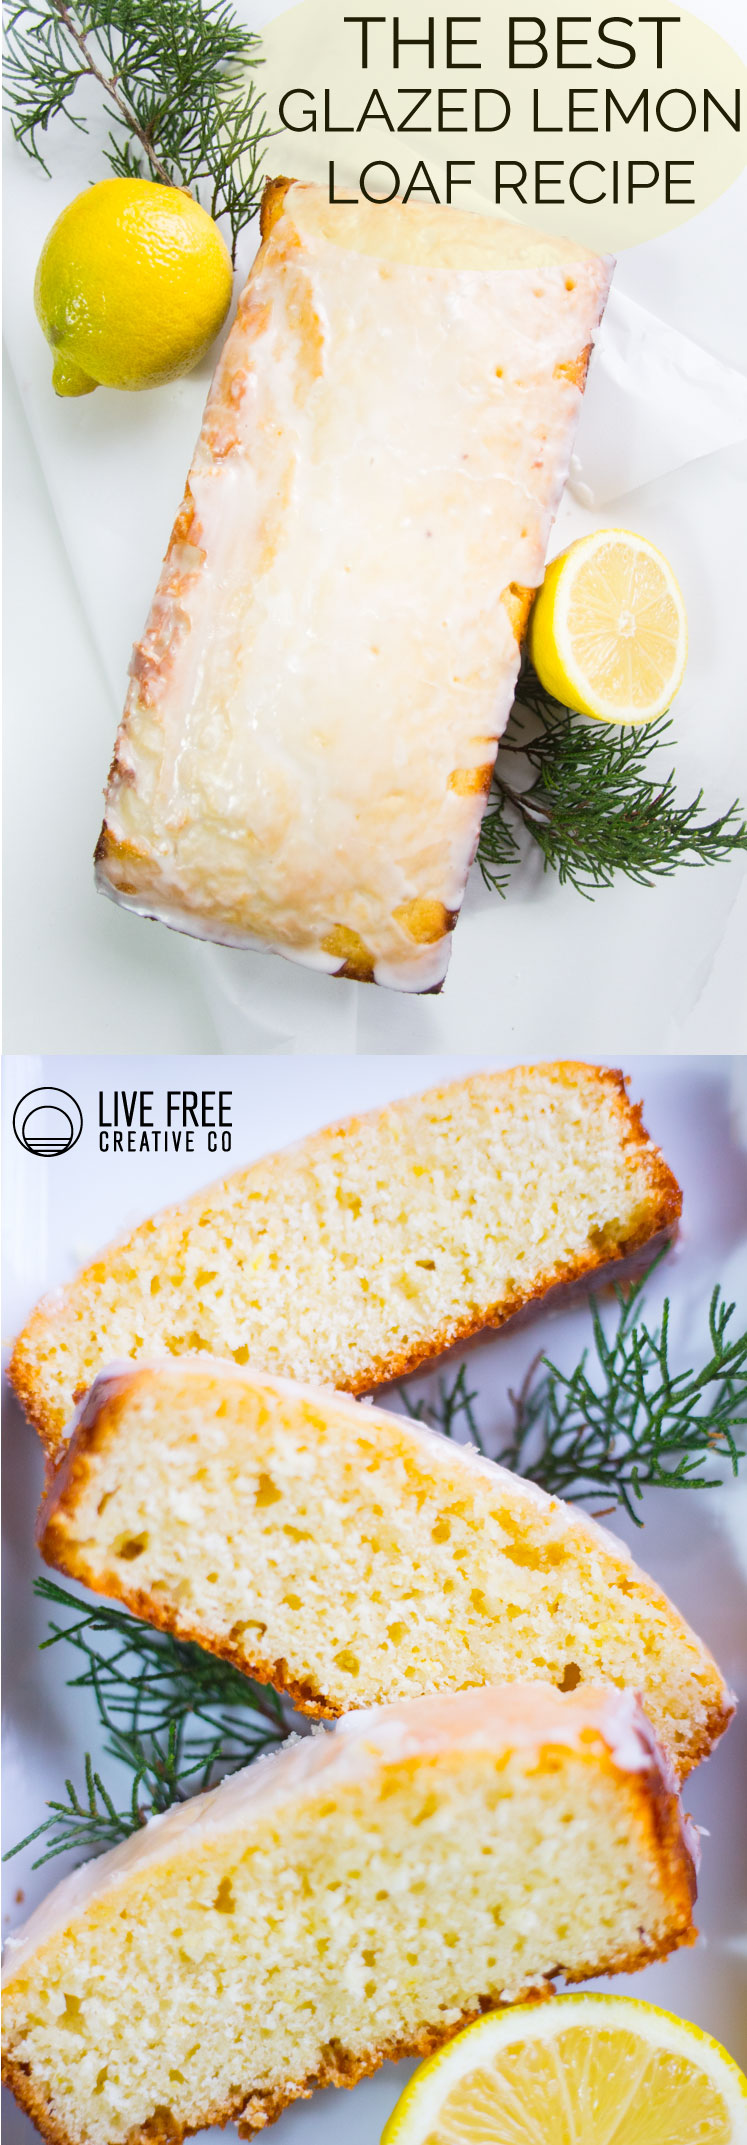 The Best Glazed Lemon Loaf Recipe